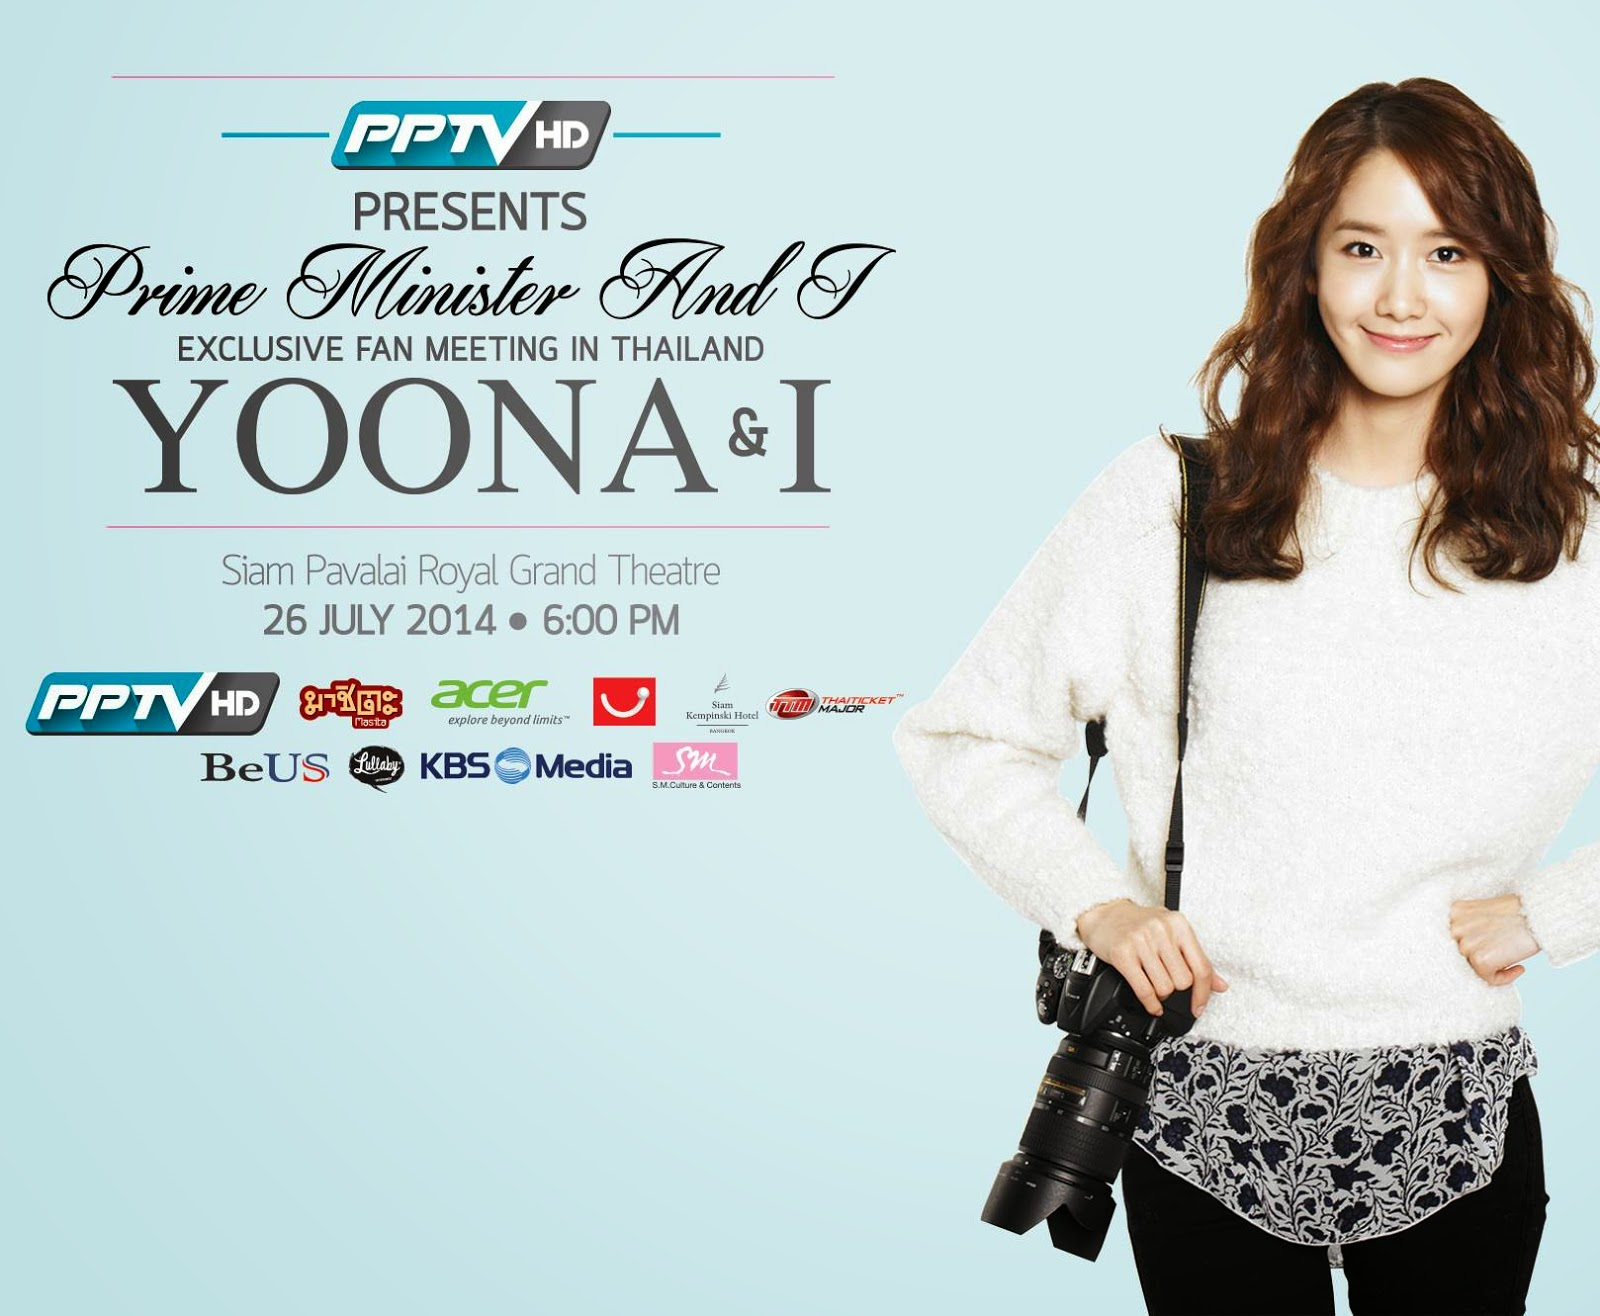 snsd yoona thailand fan meeting